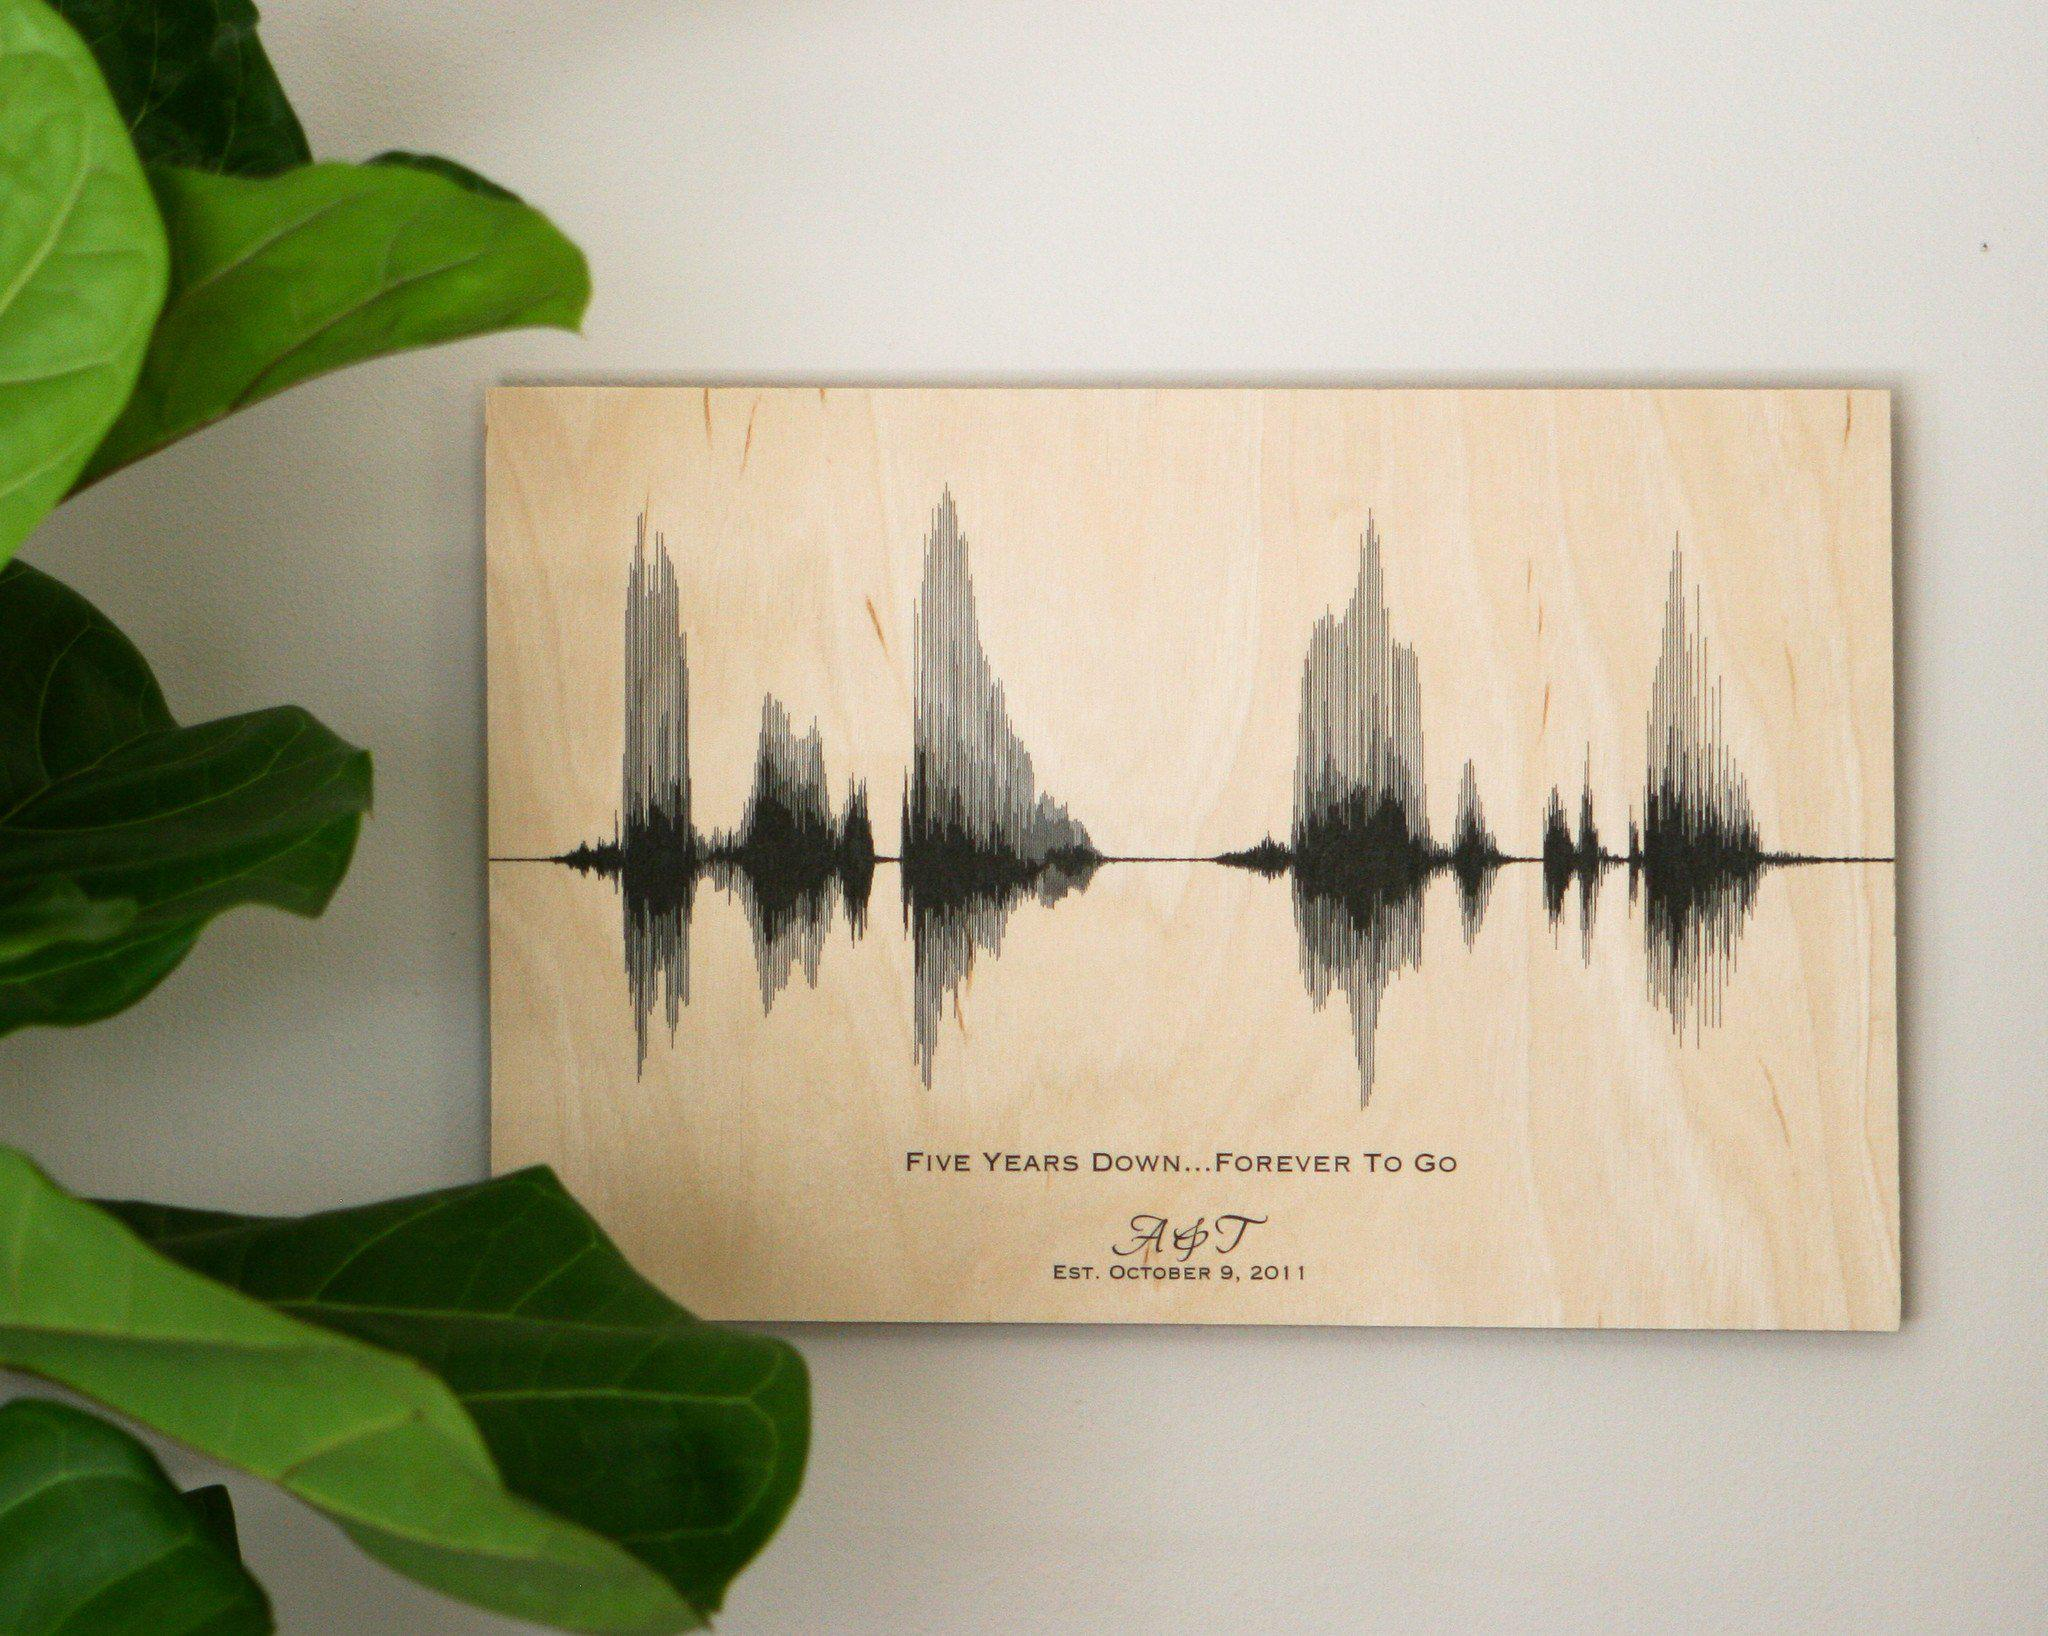 5 Year Wedding Anniversary Gift, Personalized Sound Wave Art on Wood - Artsy Voiceprint